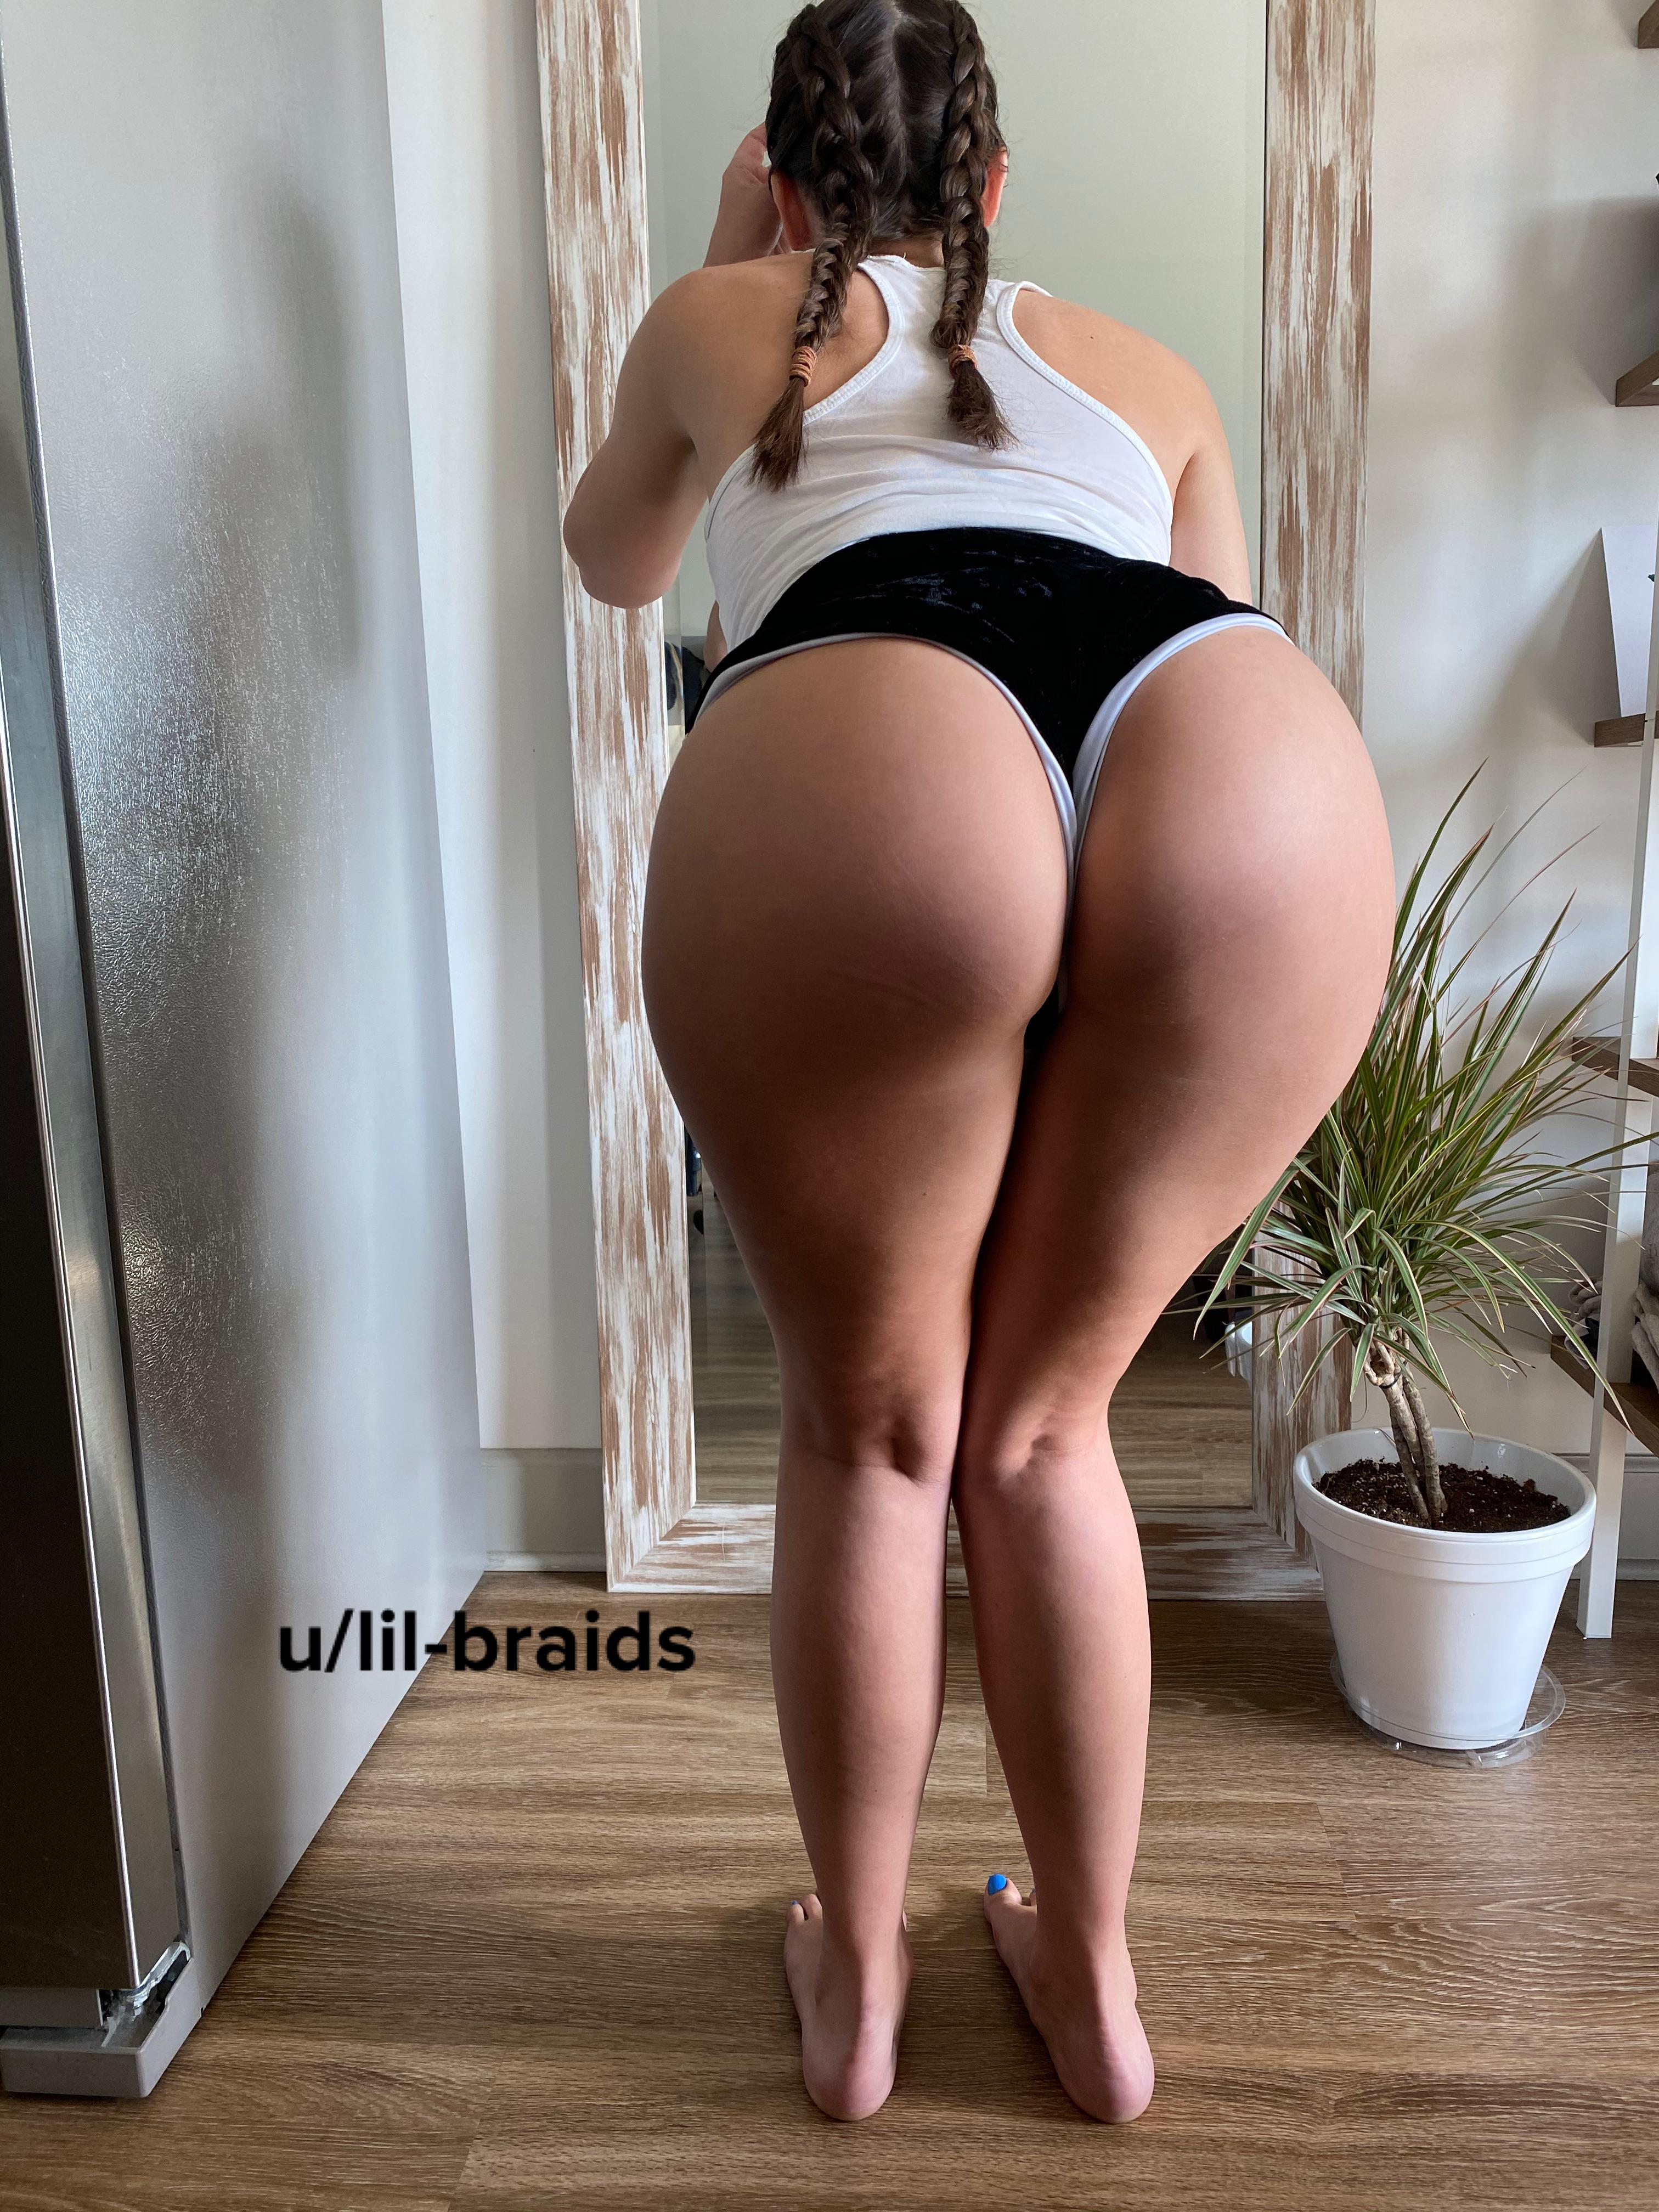 OnlyFans